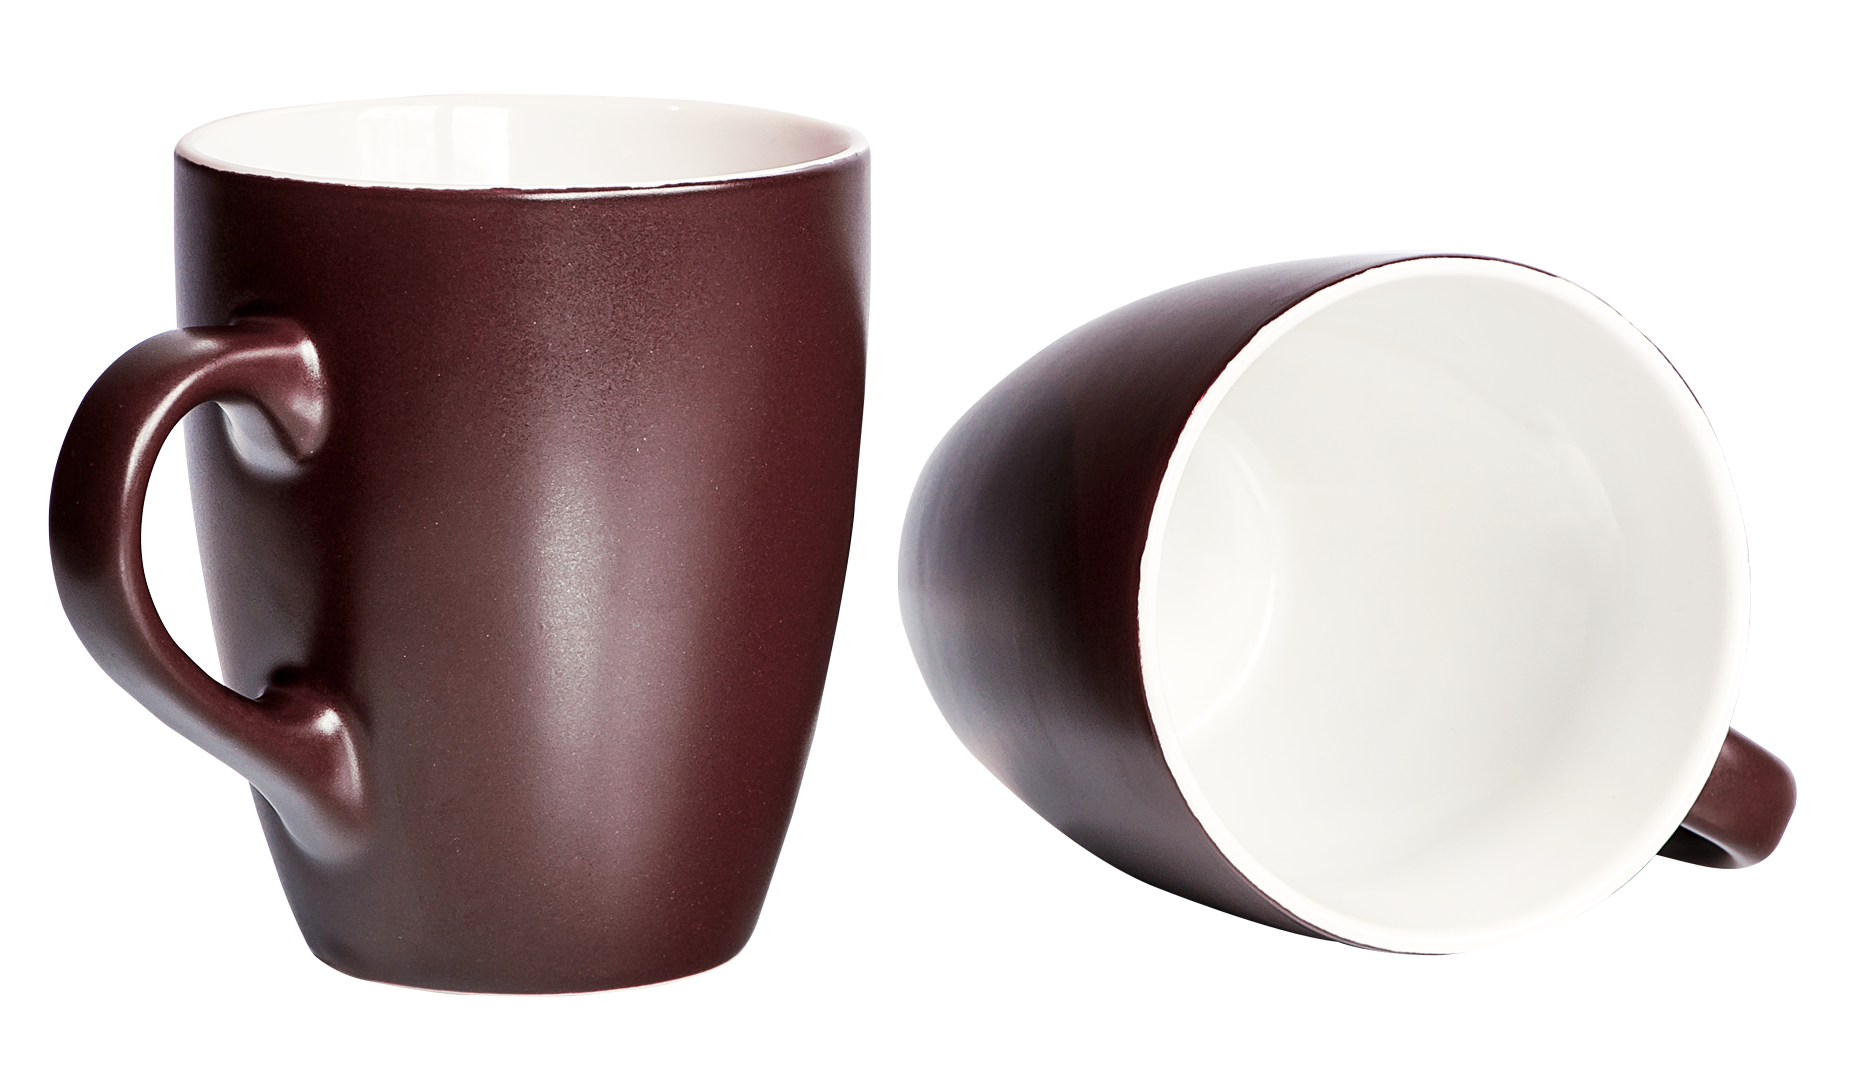 Coffee Cup PNG Image - Cup PNG